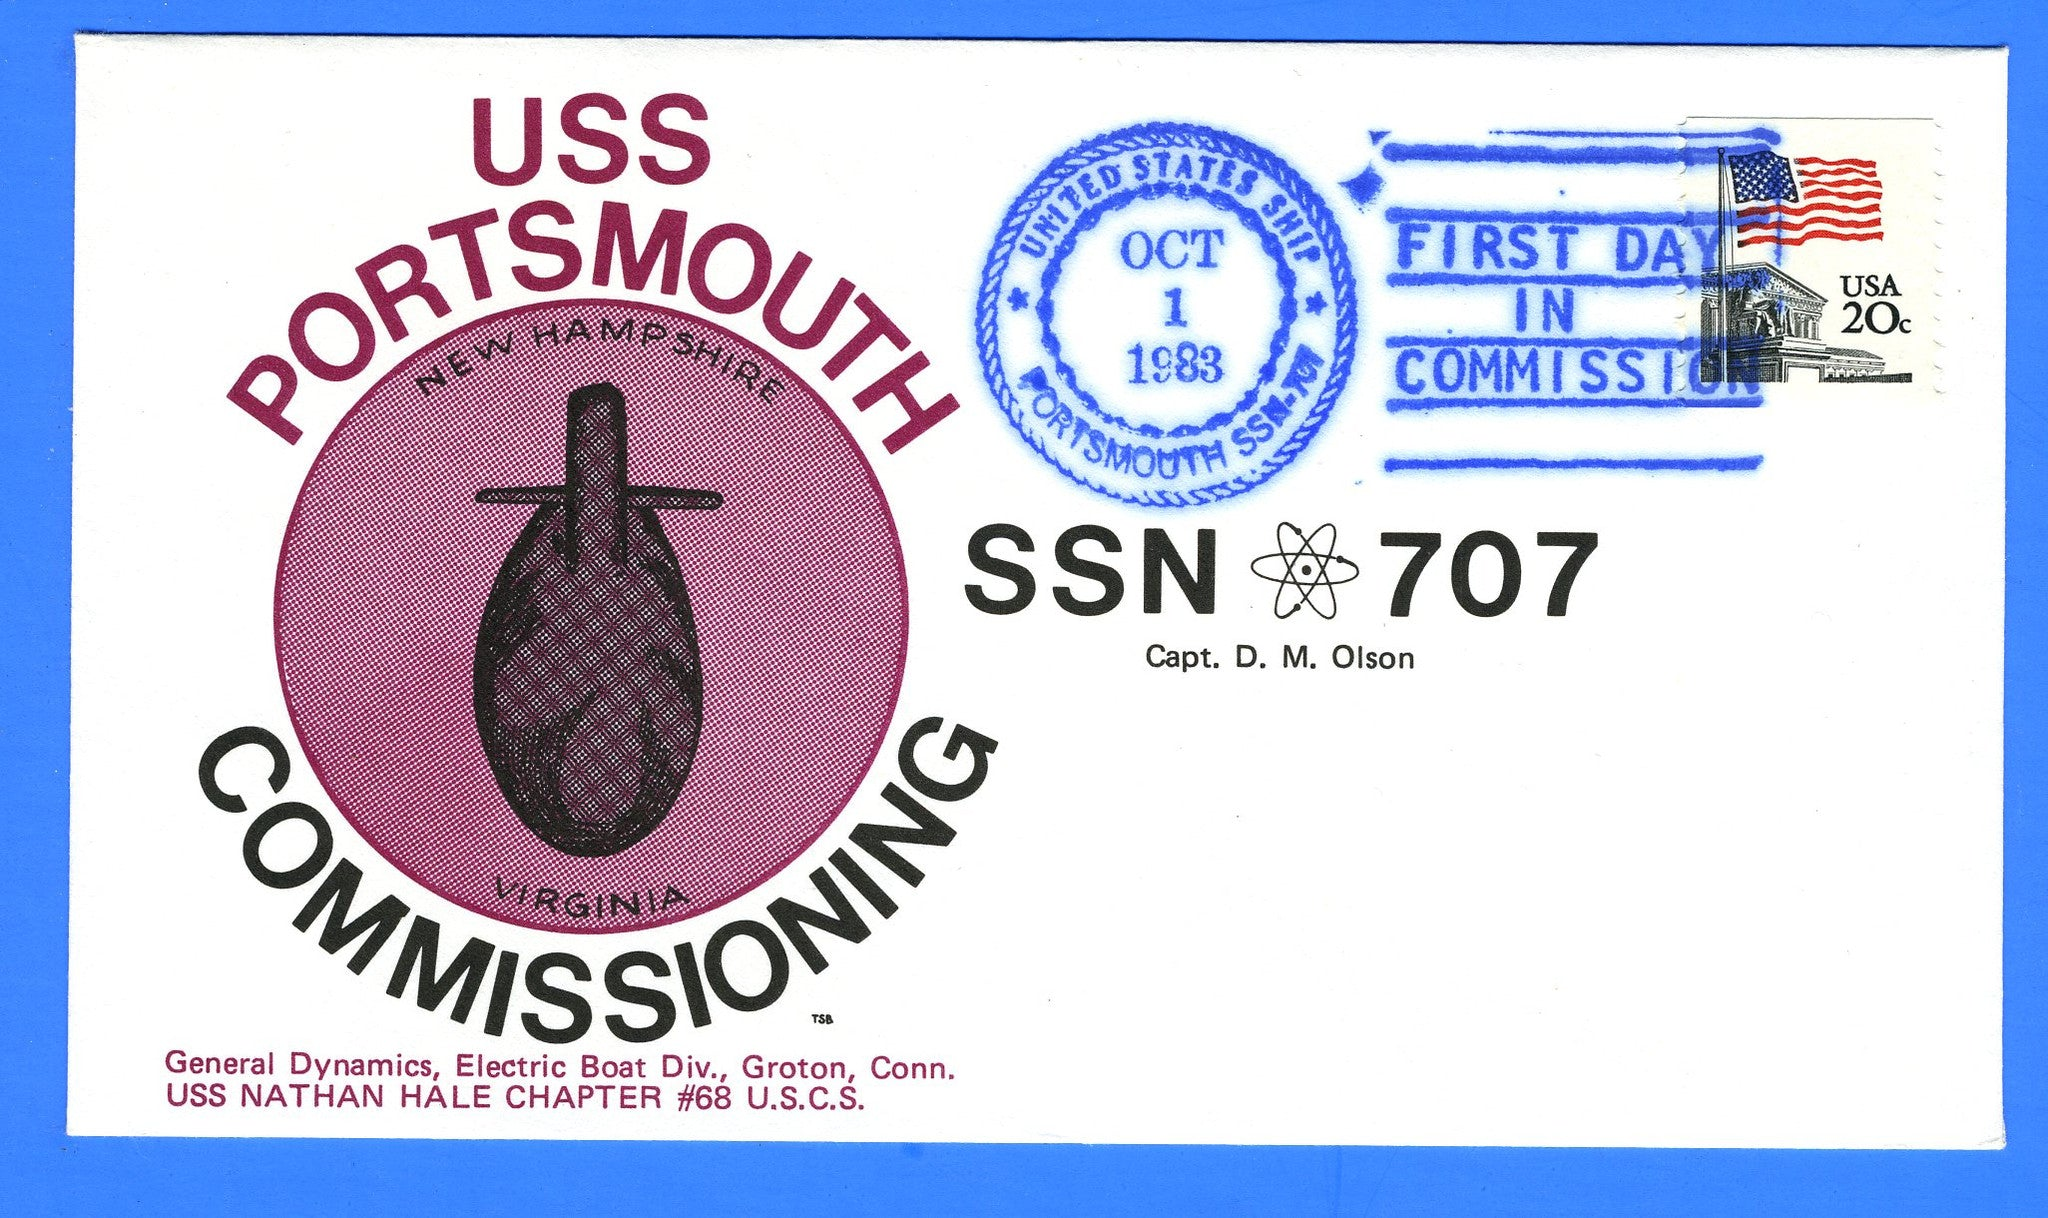 USS Portsmouth SSN-707 Commissioning October 1, 1983